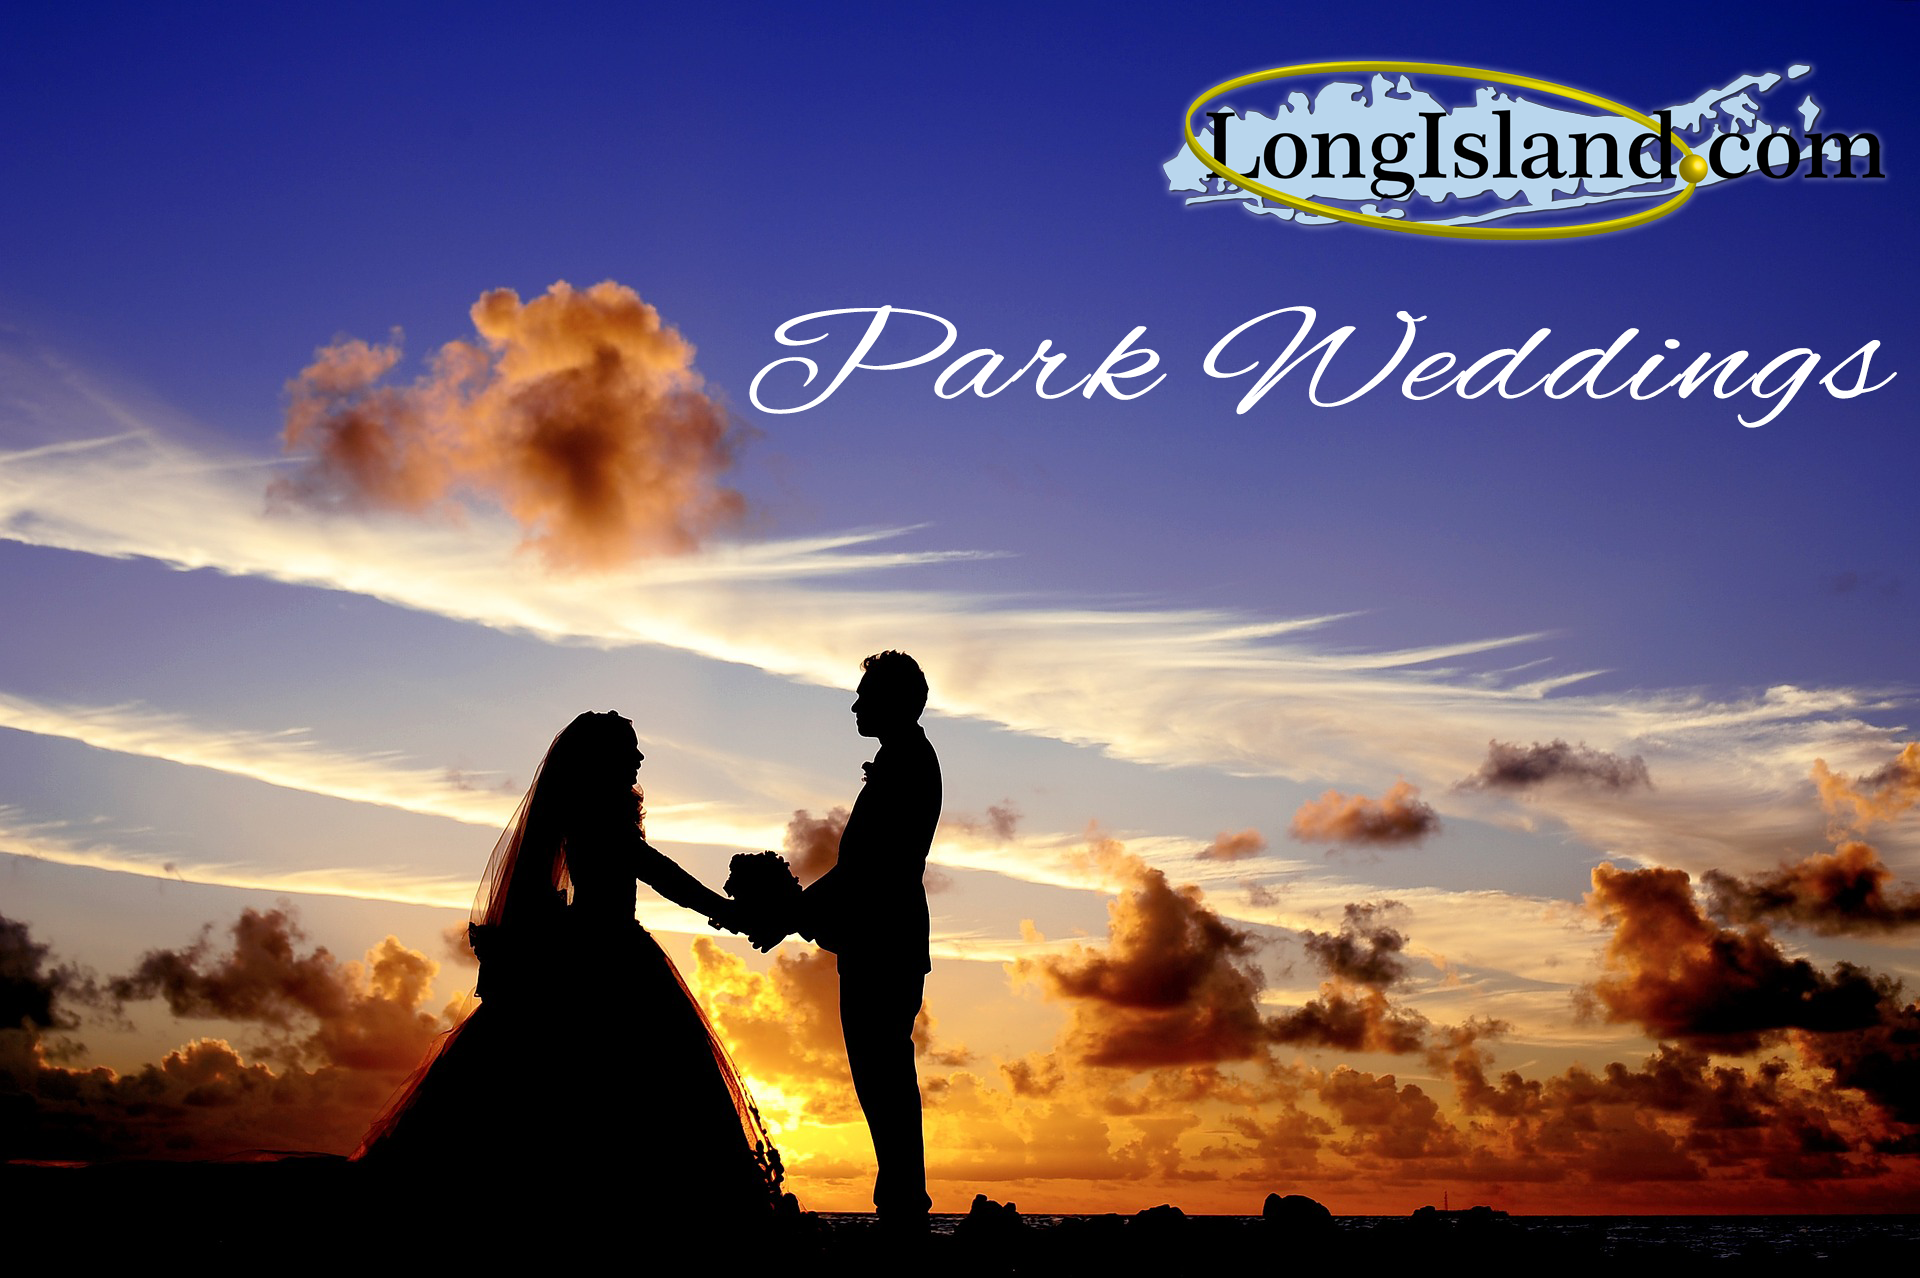 Long island park weddings get married in a long island park long island is the perfect place to plan a dream wedding there are many parks to choose from when it comes to planning a local outdoor wedding junglespirit Image collections